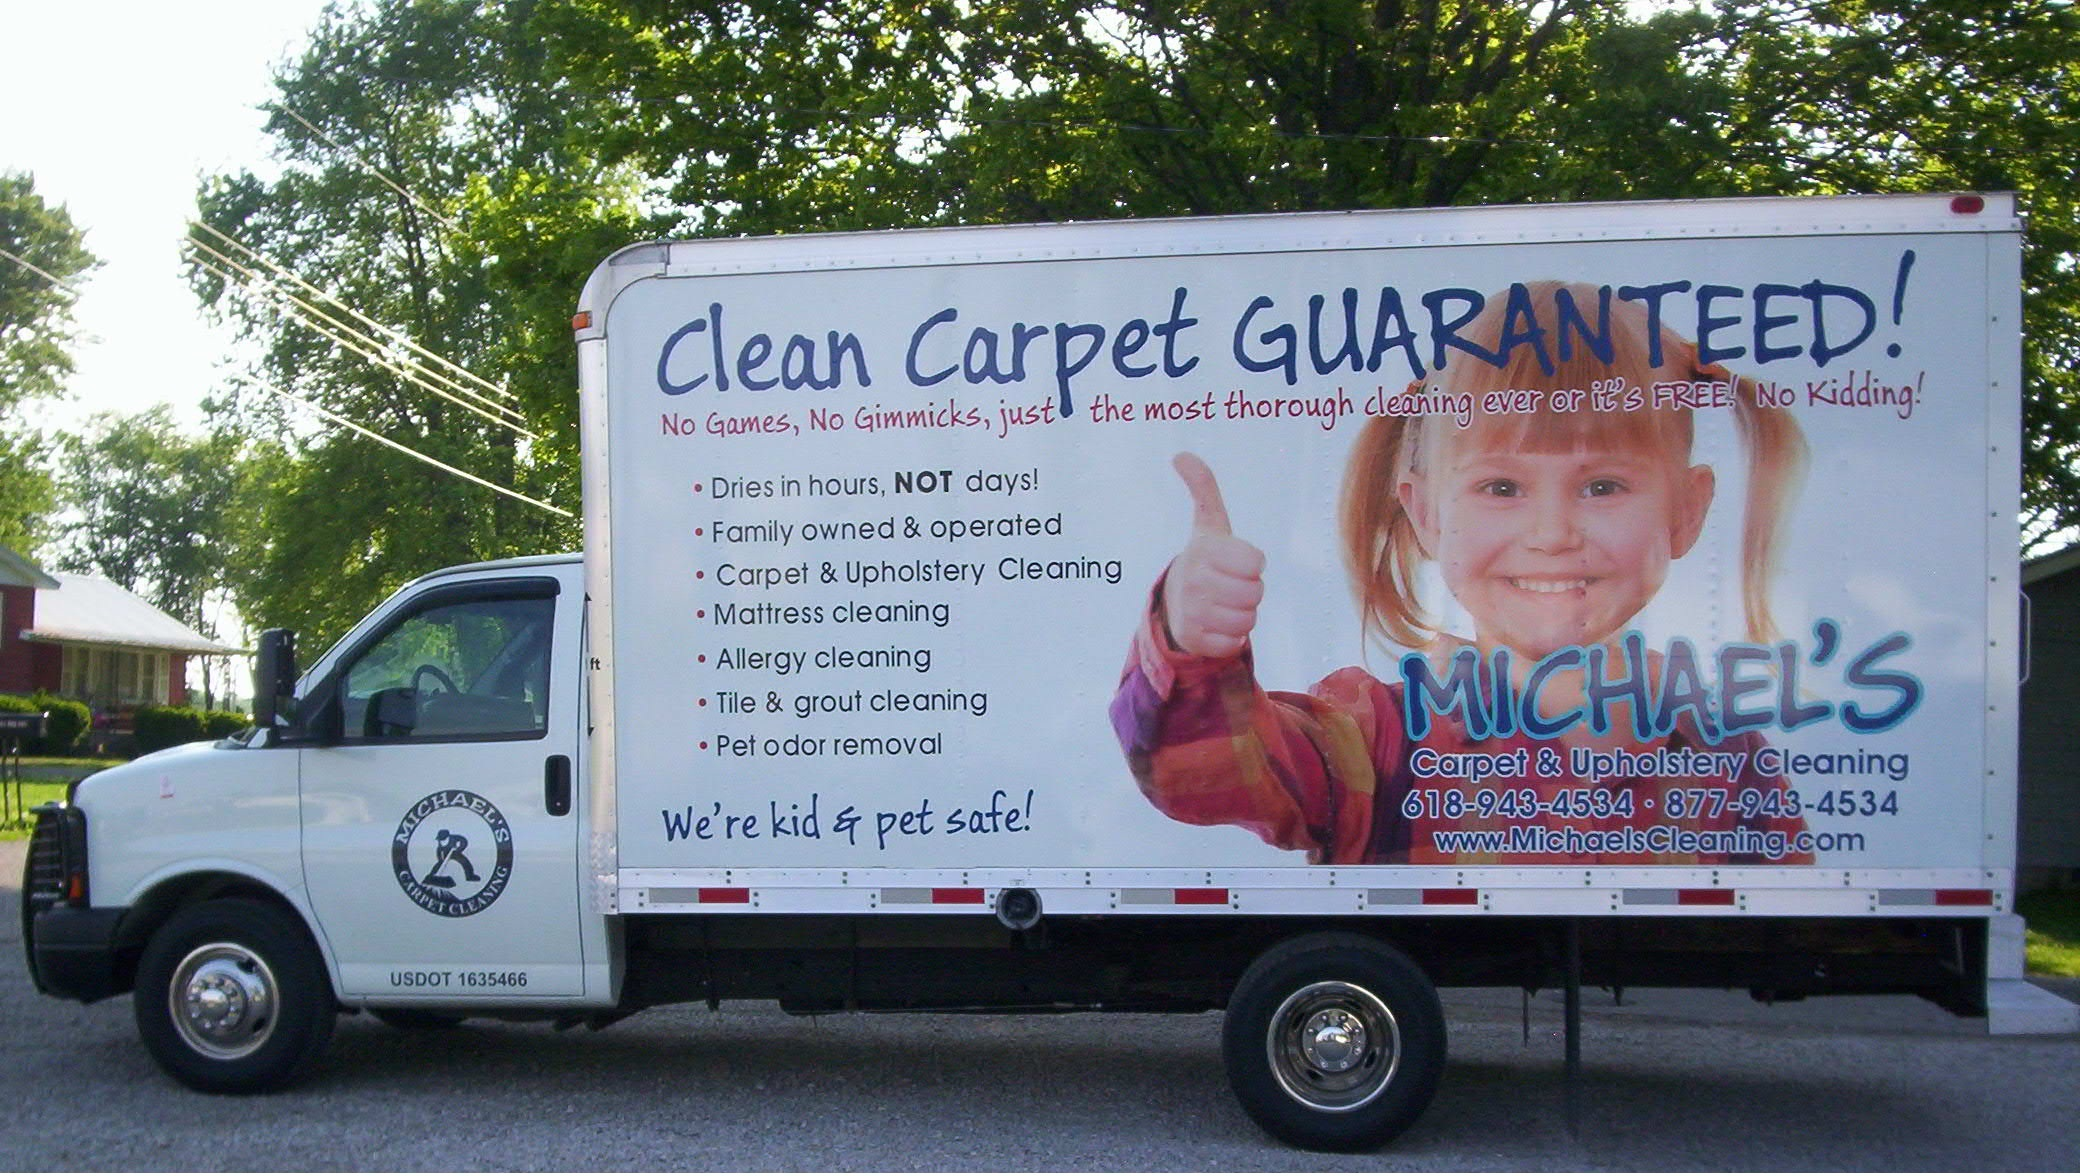 Michaels carpet cleaning michaels for Michaels craft near me